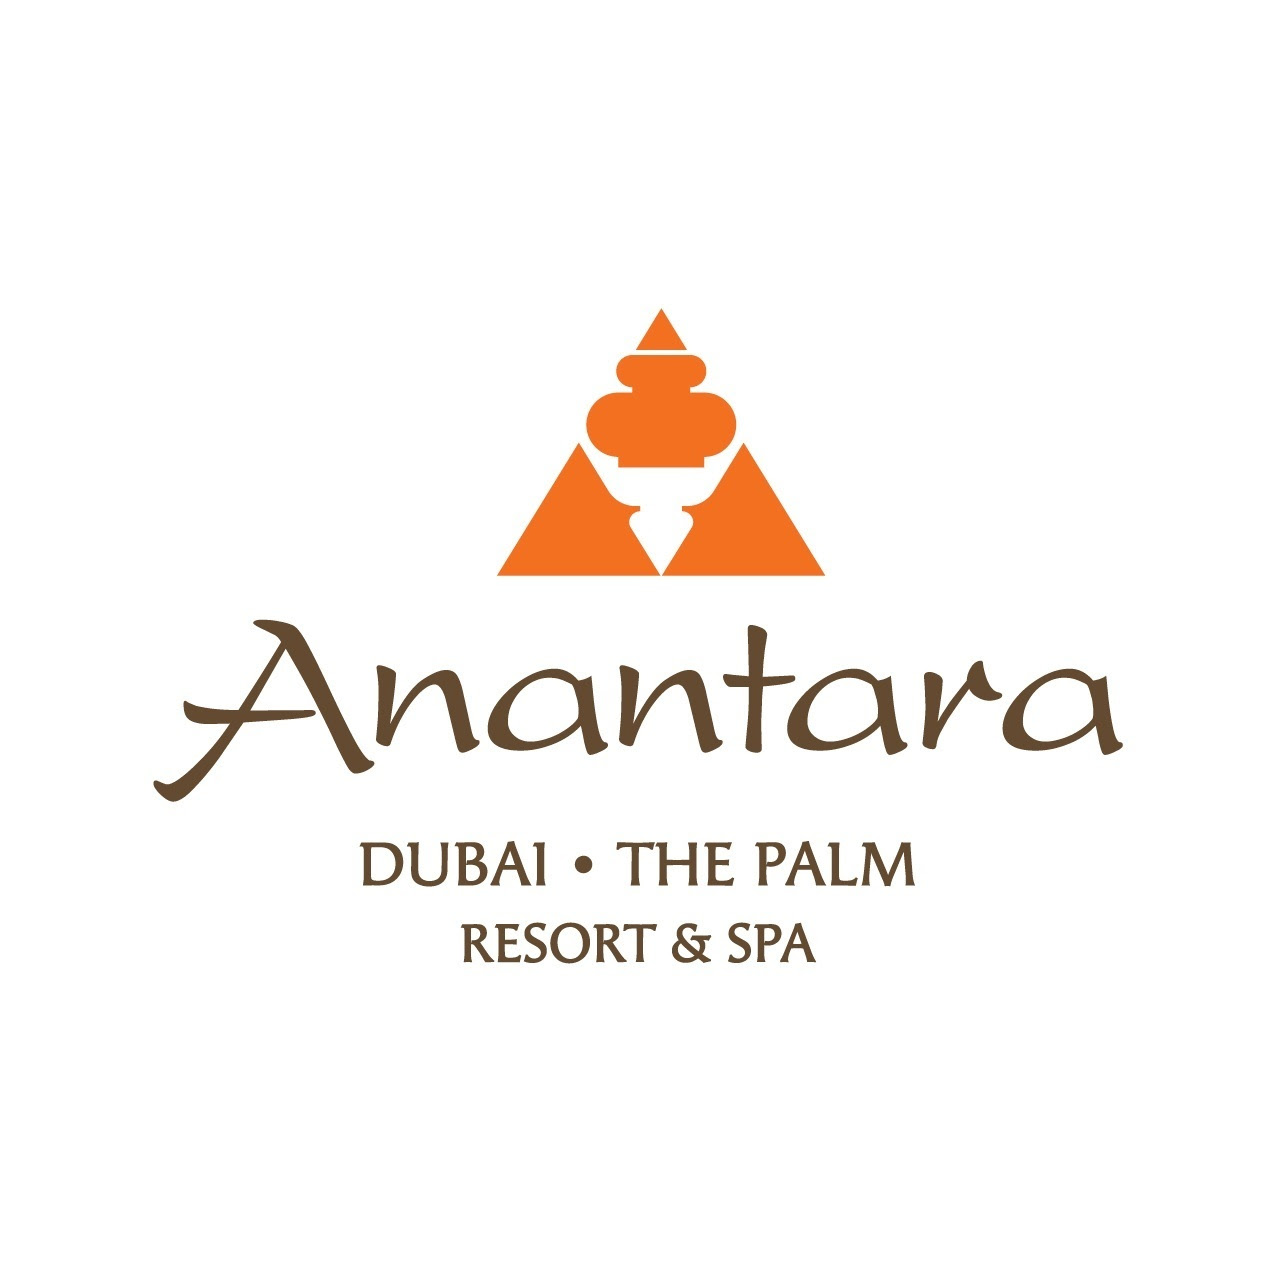 Anantara_Dubai_The_Palm_Resort_Spa_CW